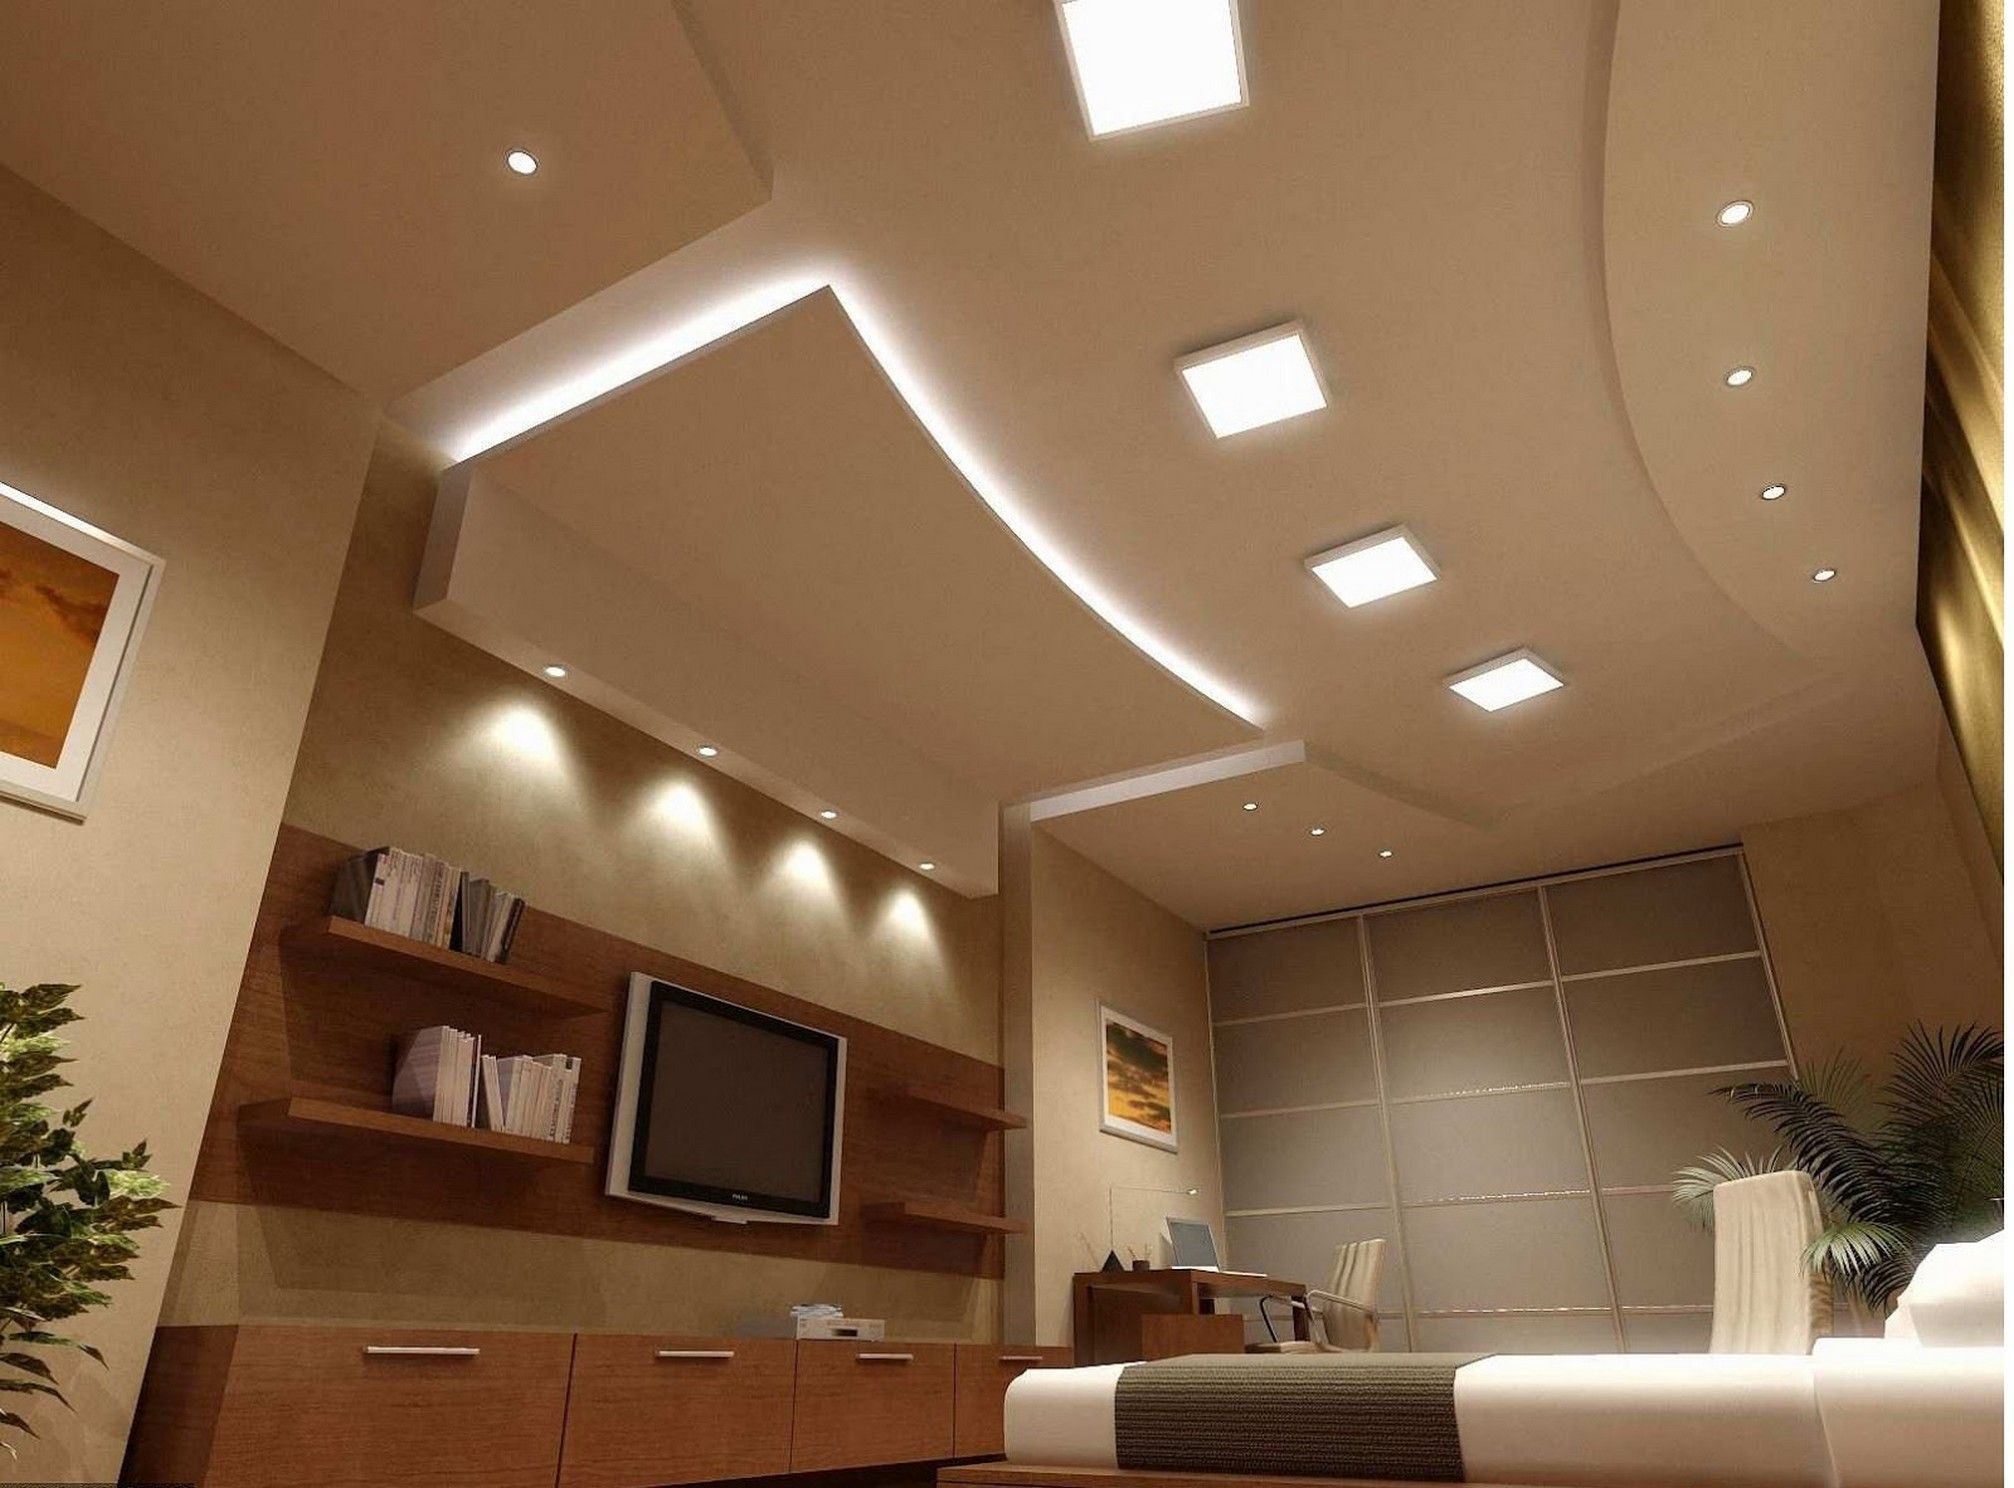 Modern Bedroom Ceiling Design decorating: gypsum board ceiling design for modern bedroom